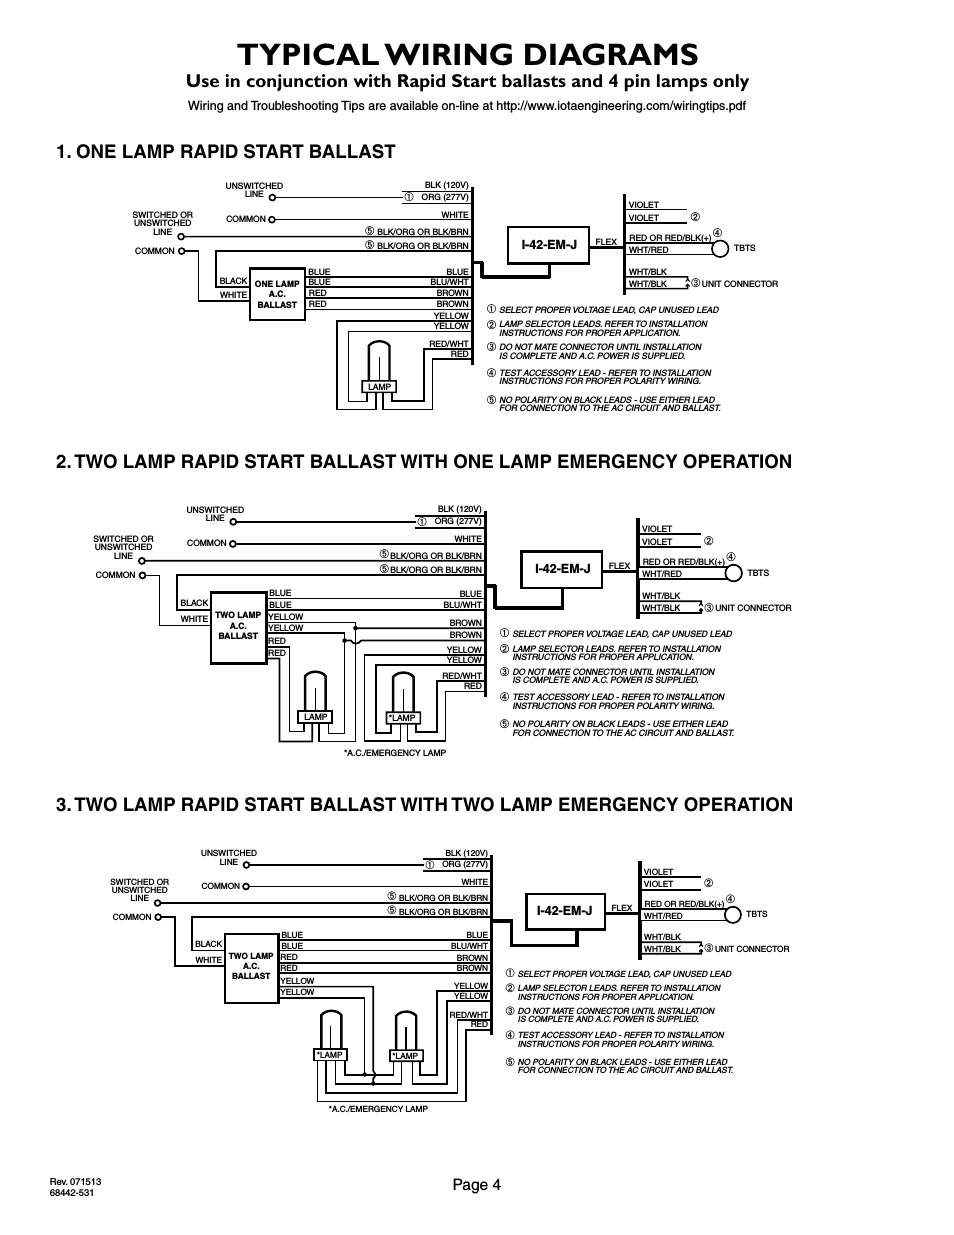 Emergency Ballast Wiring Diagram For Two | Wiring Liry on